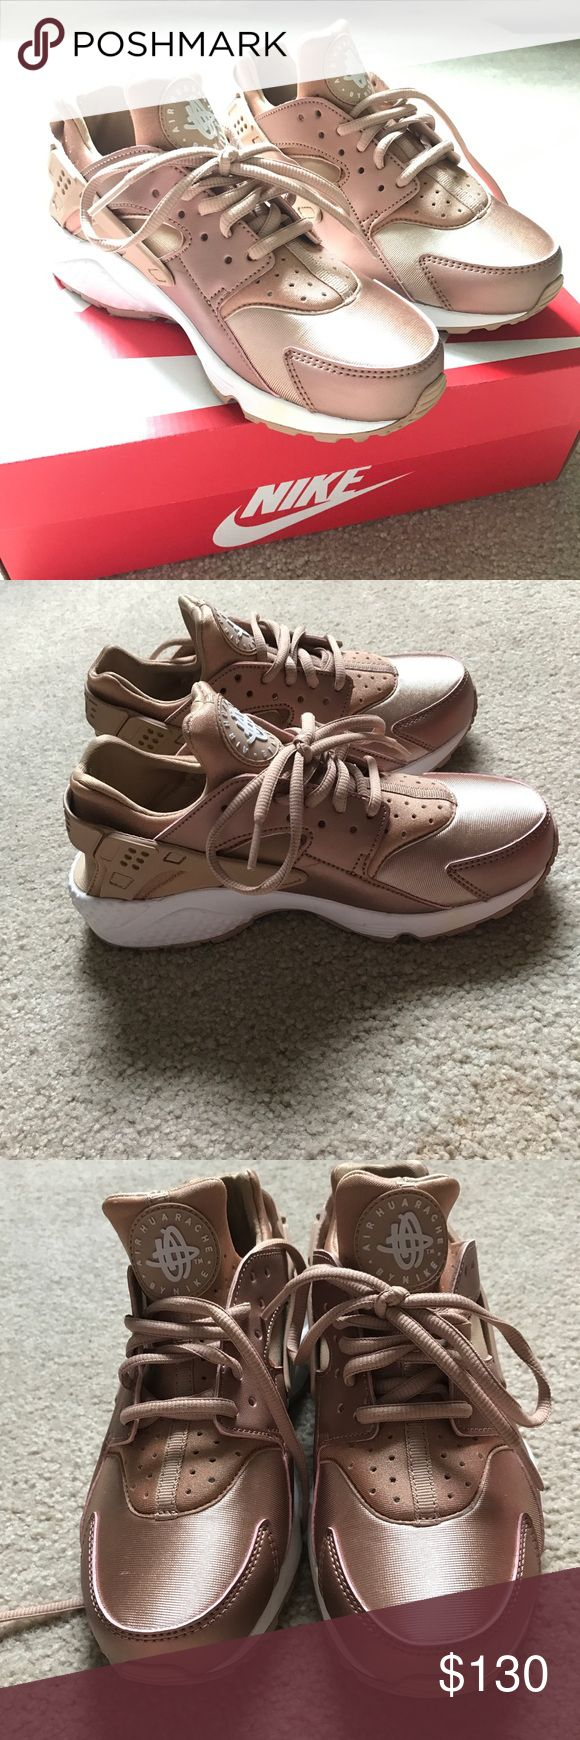 ROSE GOLD Nike Huarache Run Extremely RARE Rose Gold Nike Air Huarache Run SE. NEW! Never Worn. These Nike's are so gorgeous I was afraid to wear them! Offers welcome! Nike Shoes Sneakers